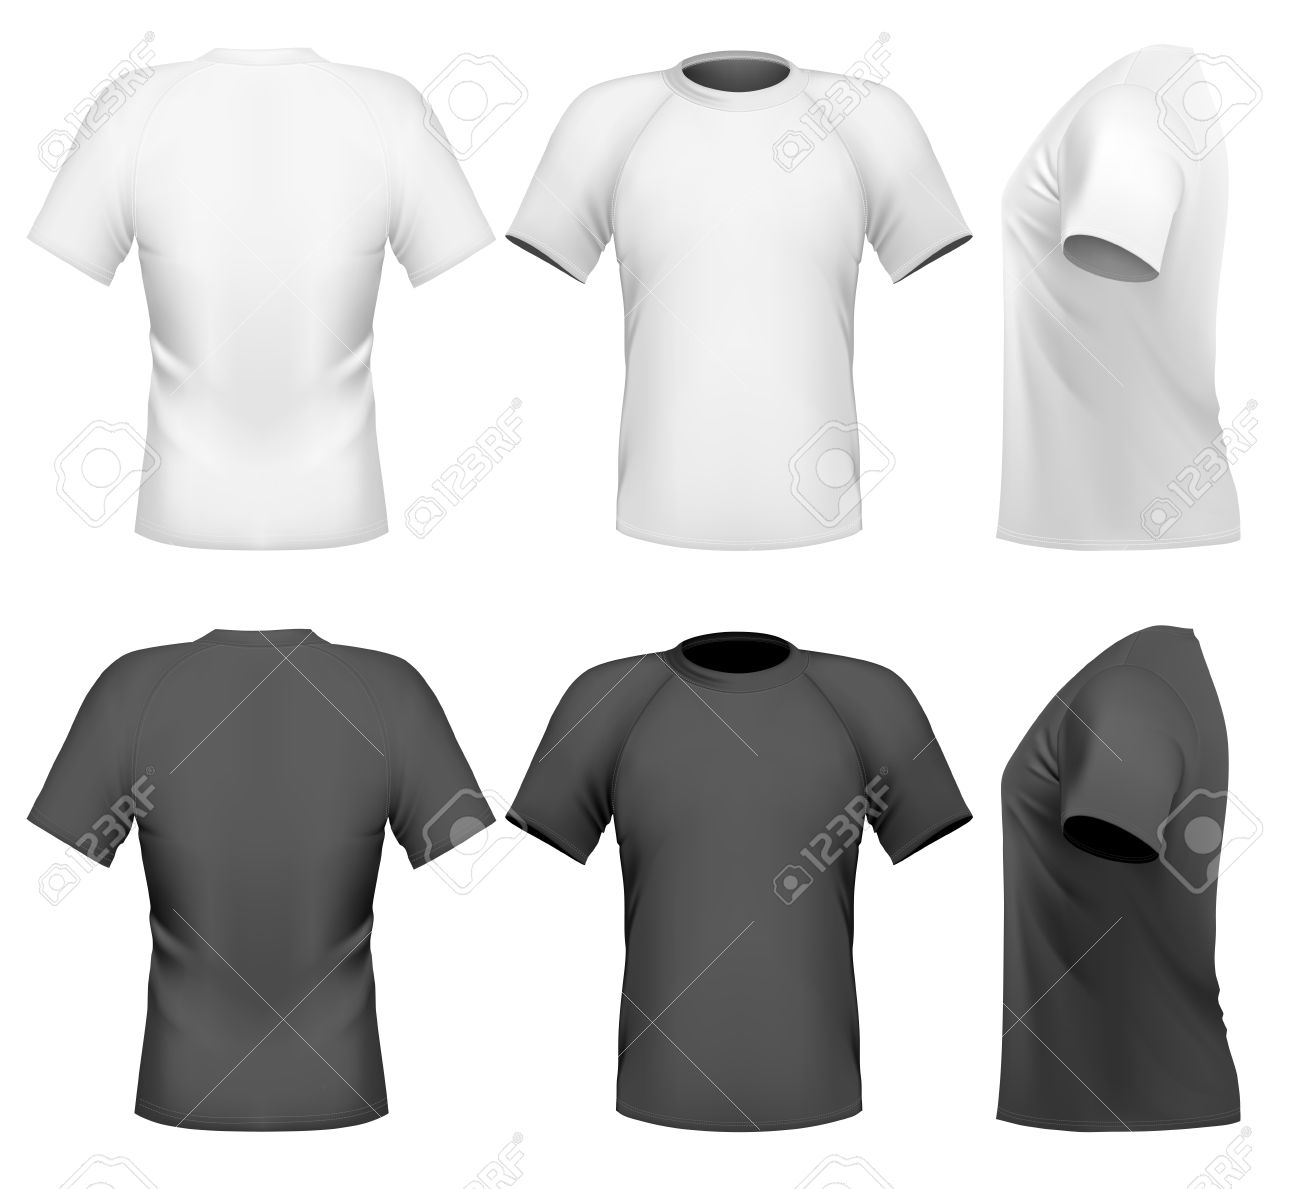 White t shirt front and back template - Men S T Shirt Design Template Front Back And Side View